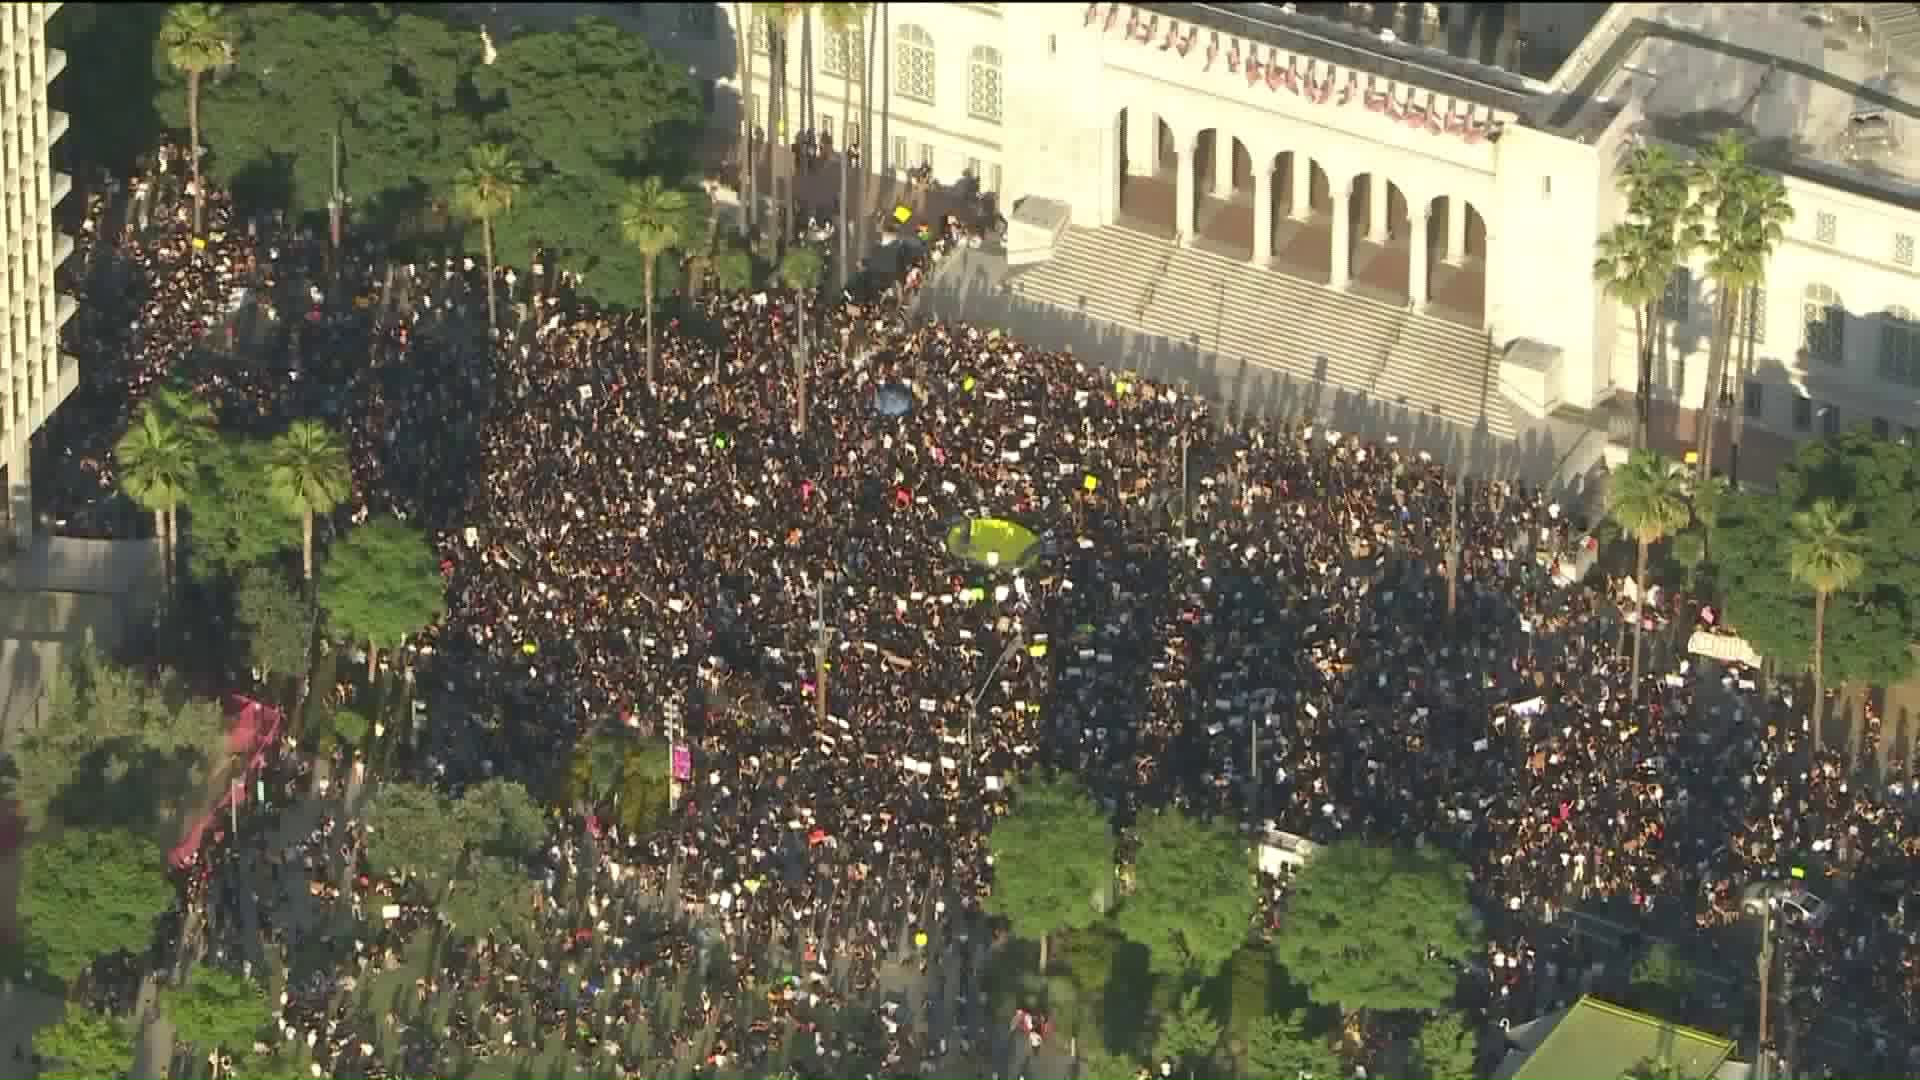 Thousands of demonstrators decrying the death of George Floyd gather in downtown Los Angeles on June 3, 2020. (KTLA)